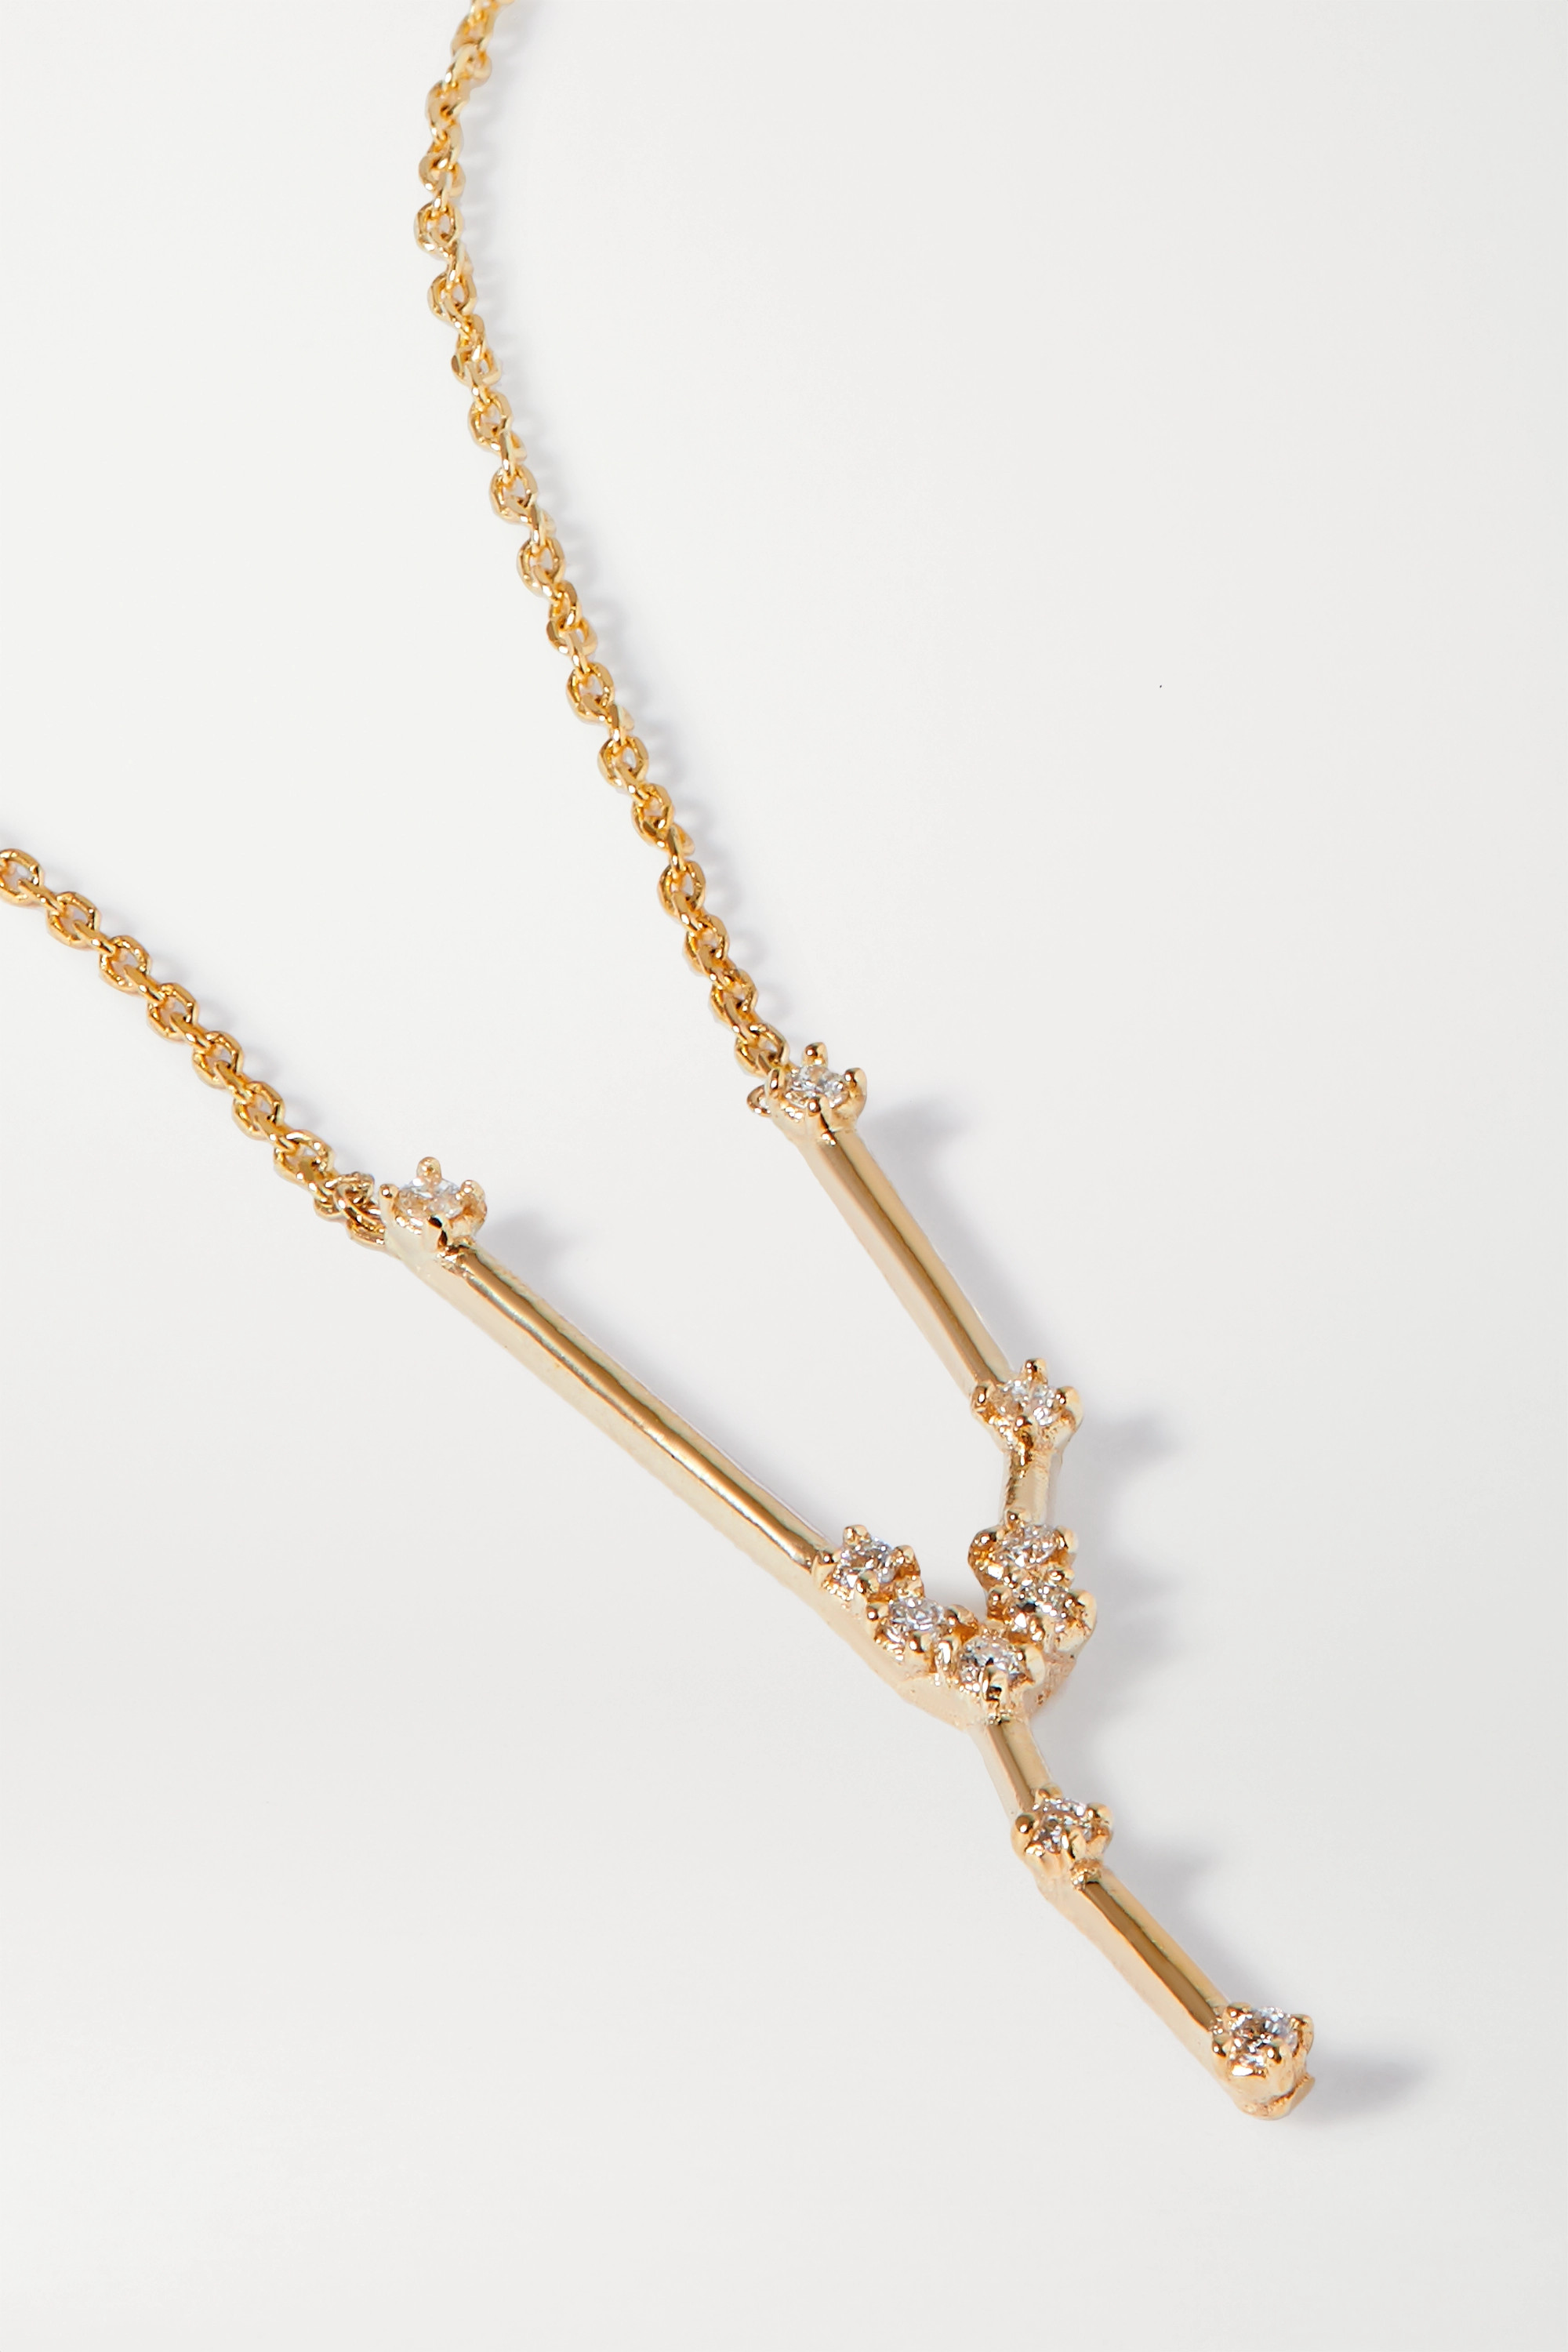 SARAH & SEBASTIAN Celestial Taurus 10-karat gold diamond necklace